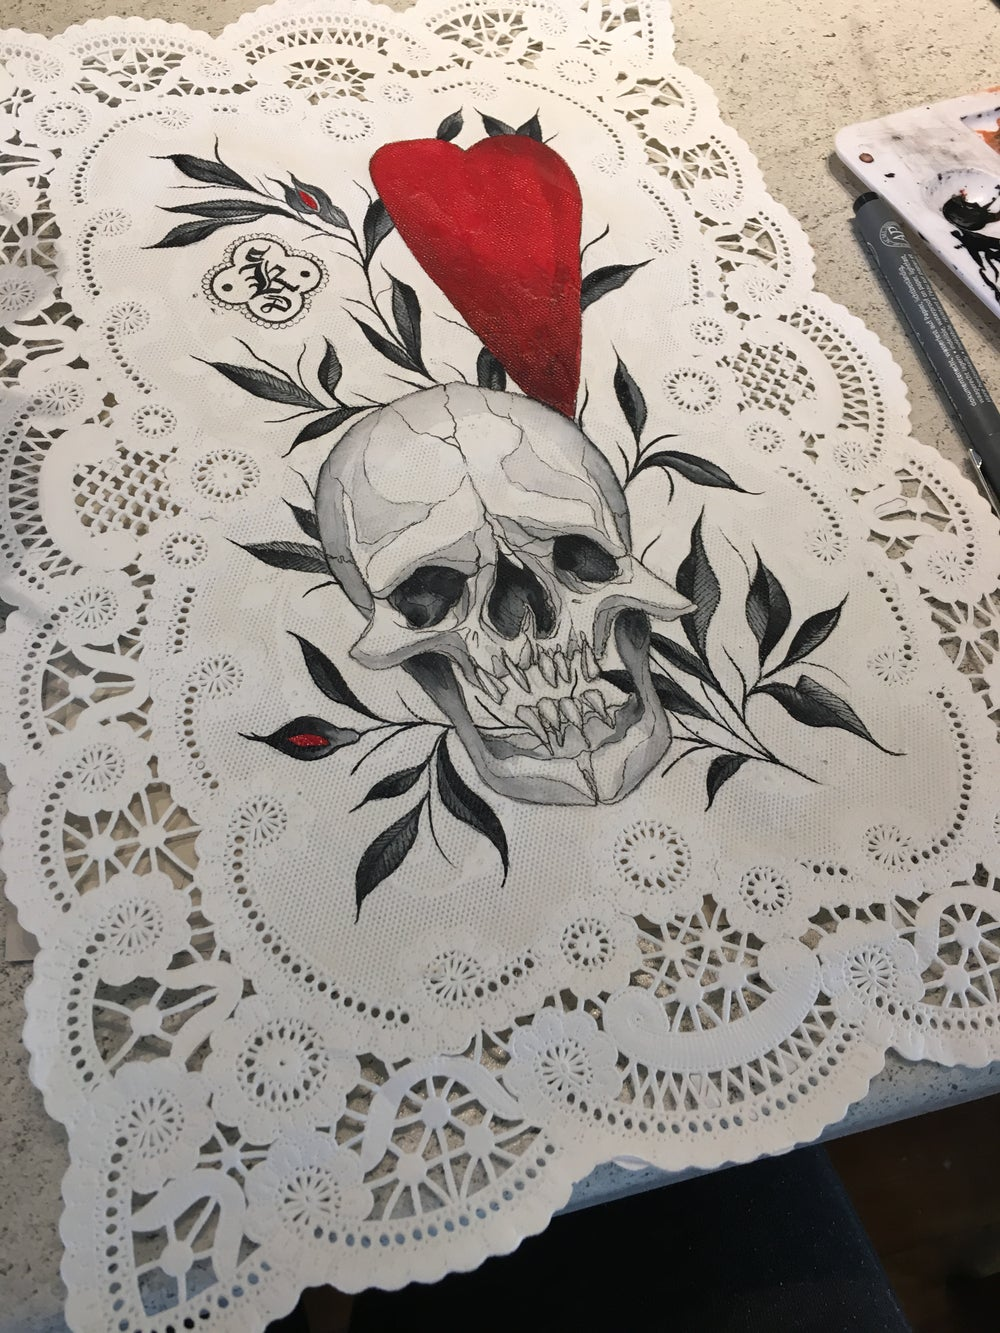 Skull and Heart Vintage Doily Painting